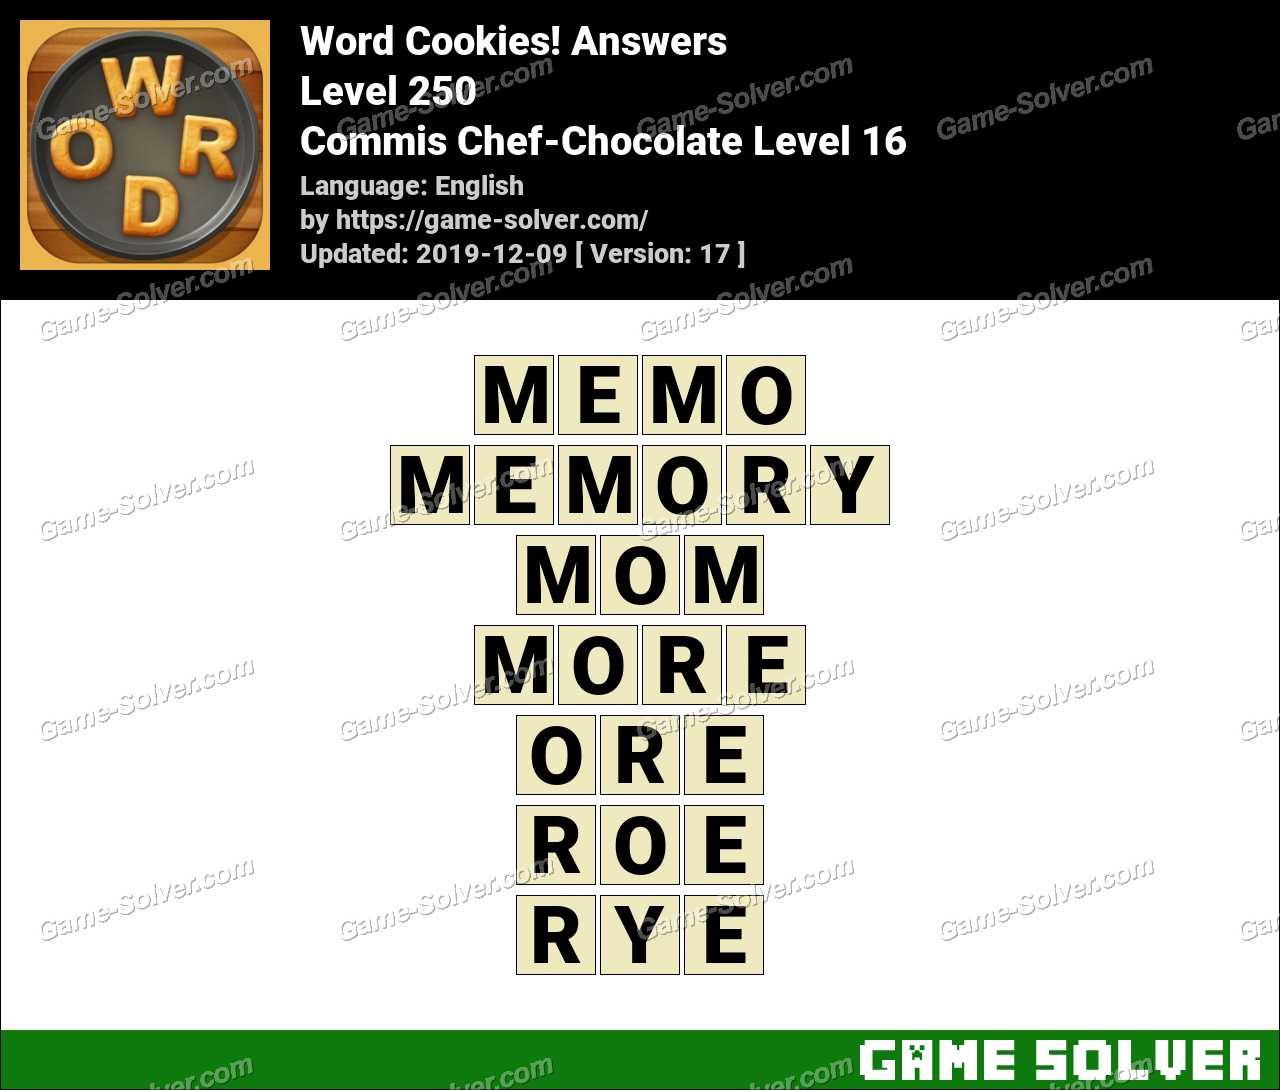 Word Cookies Commis Chef-Chocolate Level 16 Answers